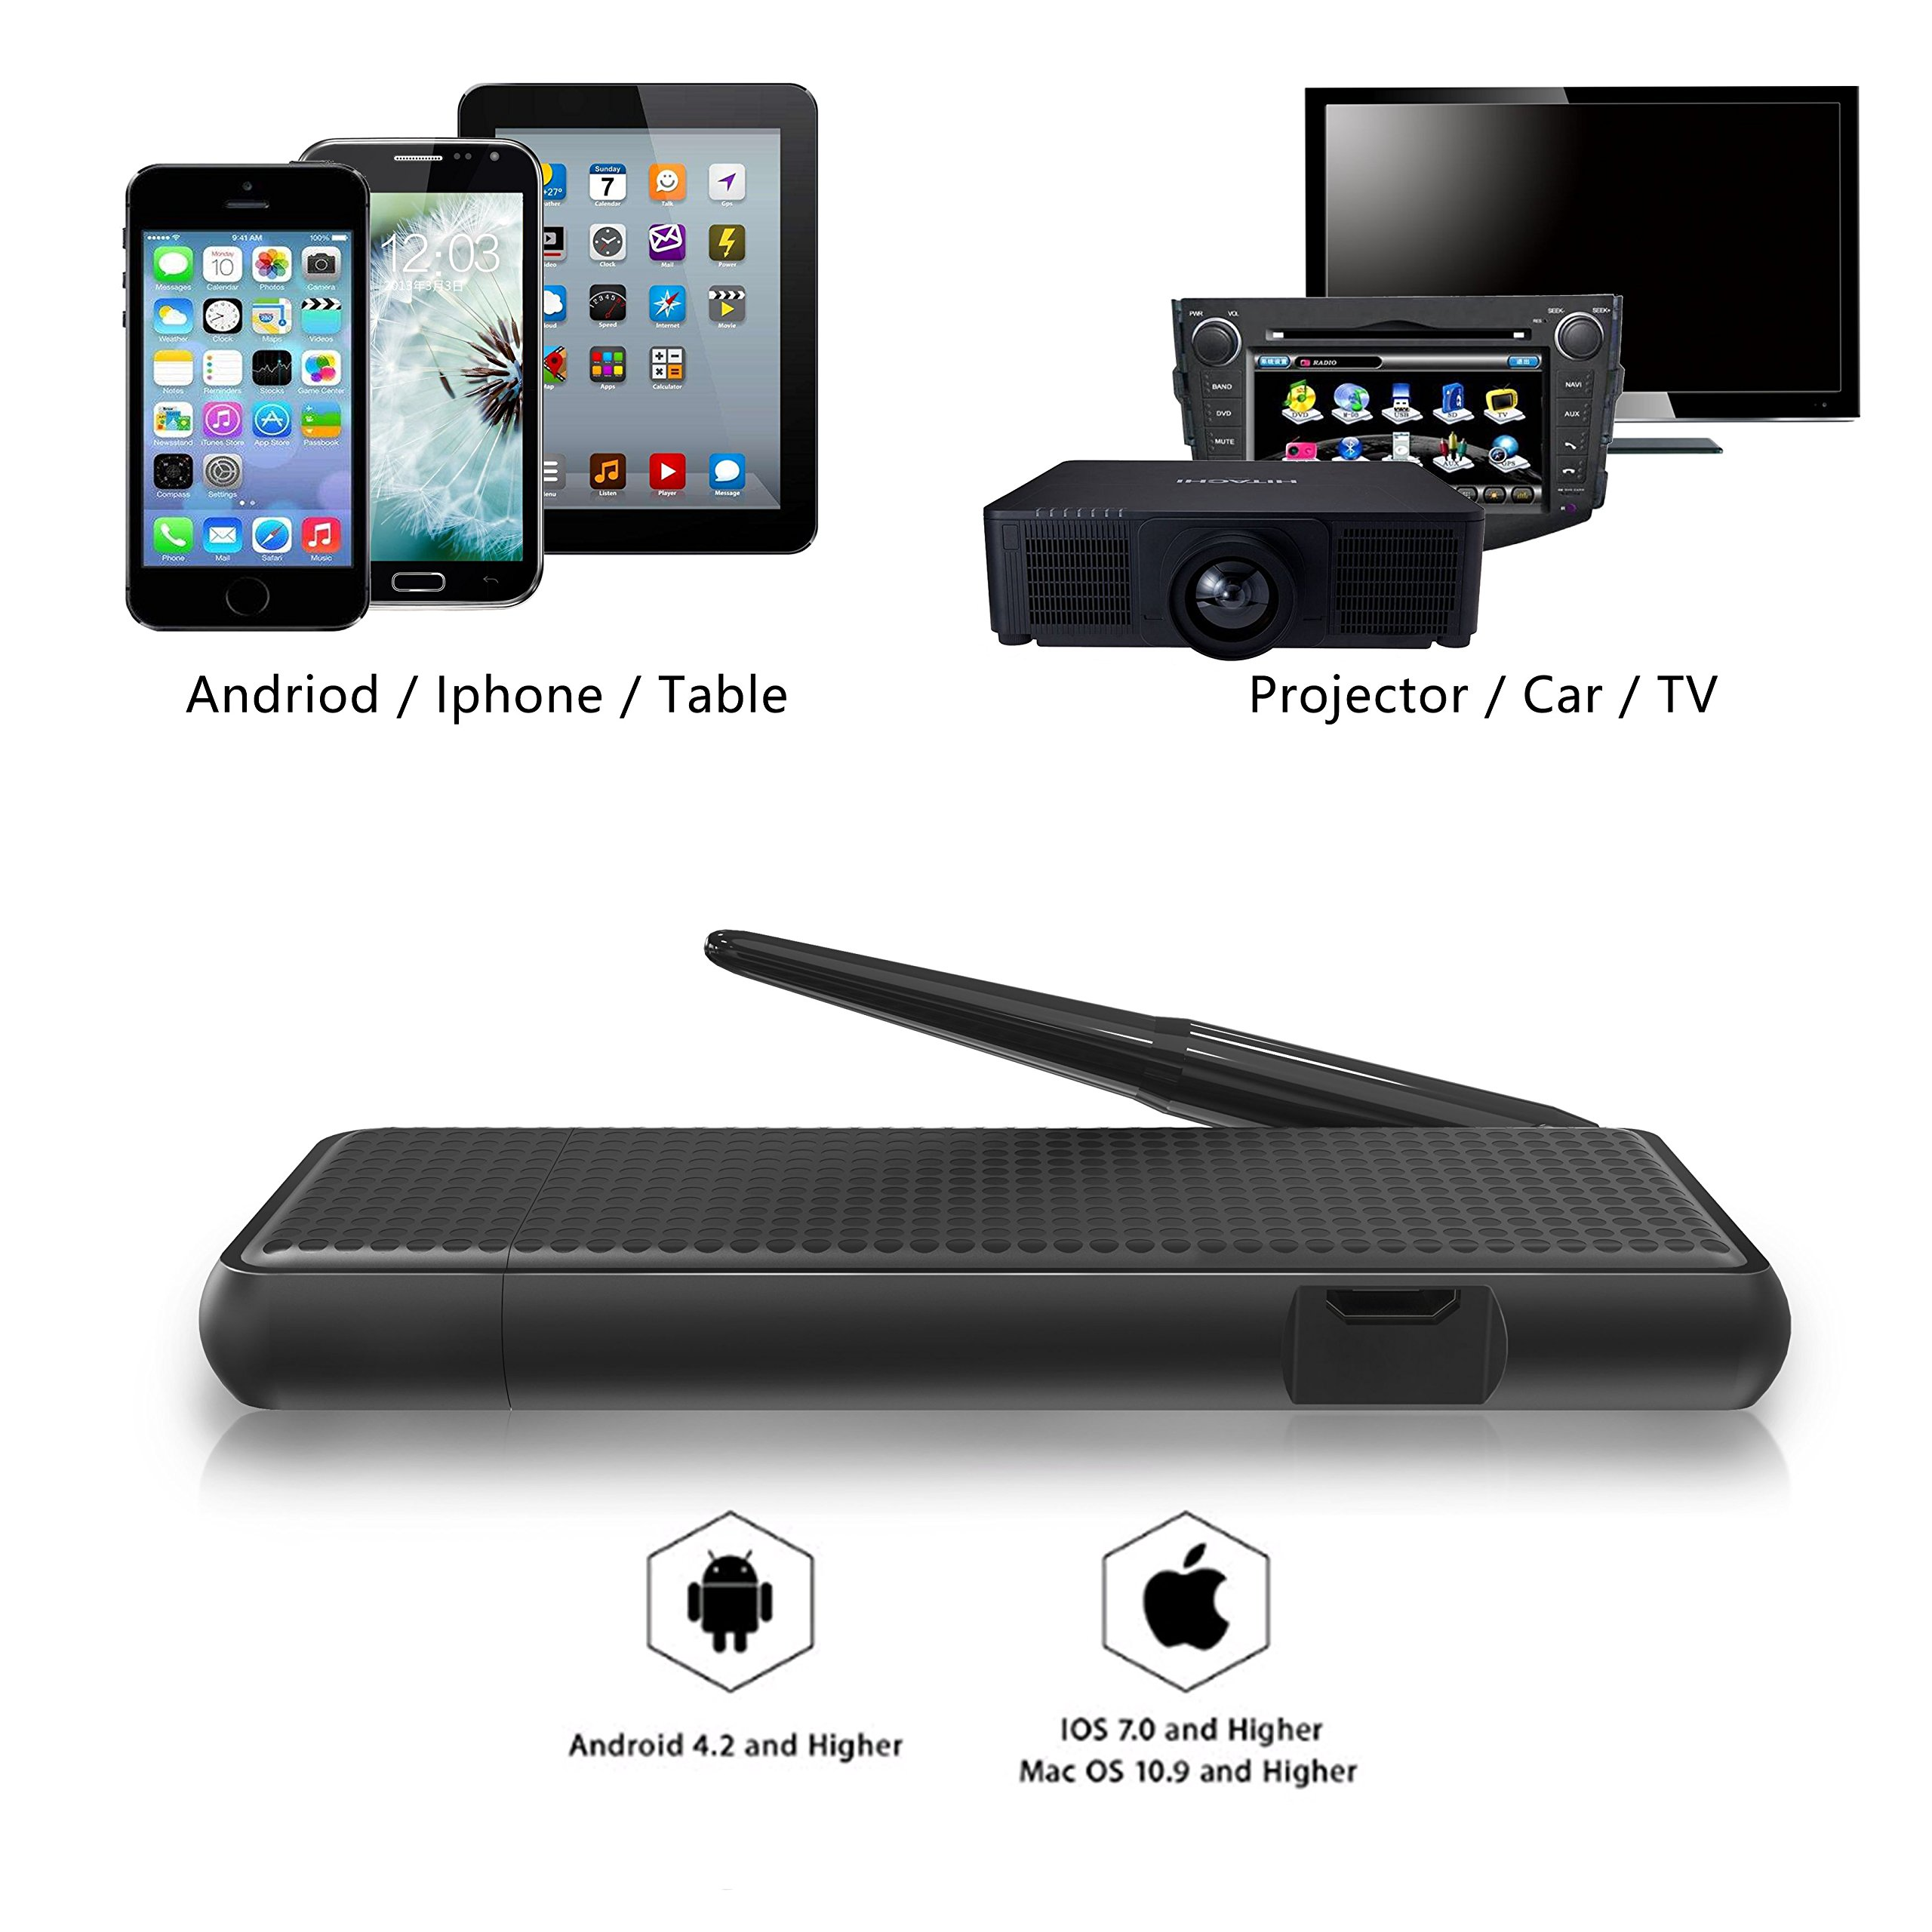 VICTONY Wireless And Wired 2 In 1 1080P WiFi Display Dongle, for TV,High Speed HDMI Miracast Dongle for Android/iOS Smartphone,Tablet,iPhone,iPad,Support AirPlay/Miracast / DLNA/Screen Mirroring by VICTONY (Image #1)